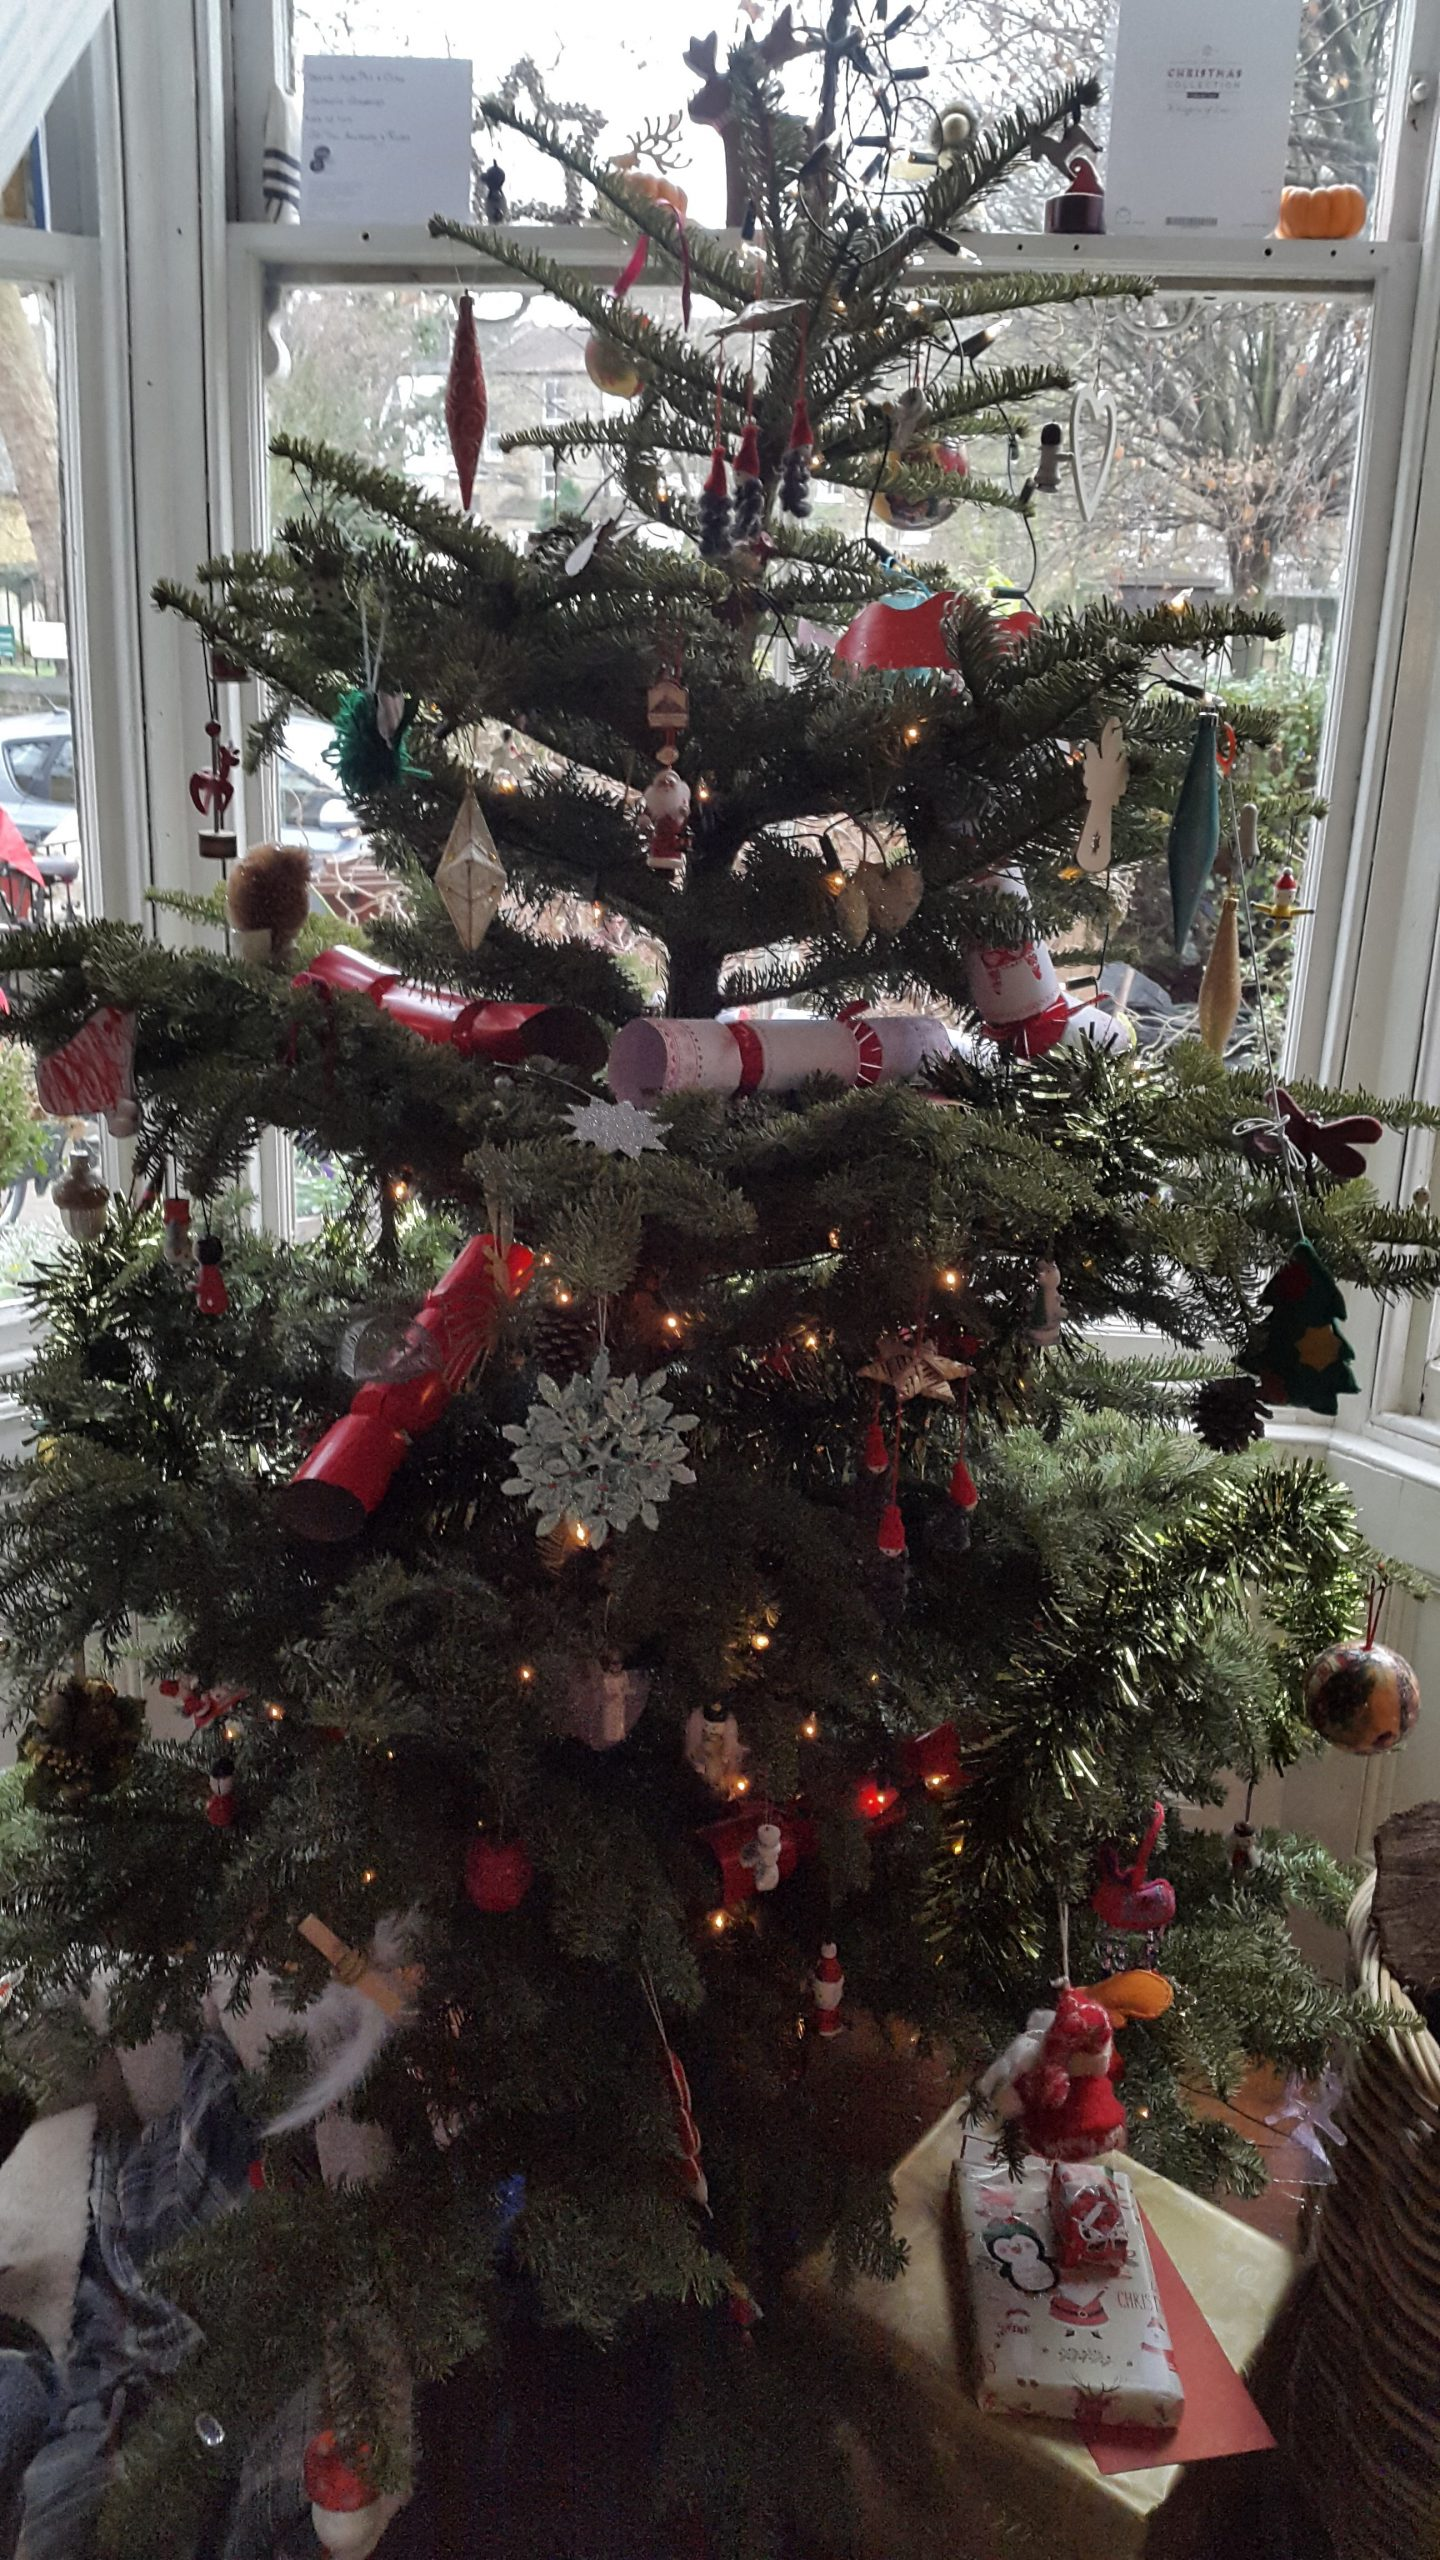 12 Blogs under the Christmas tree #3